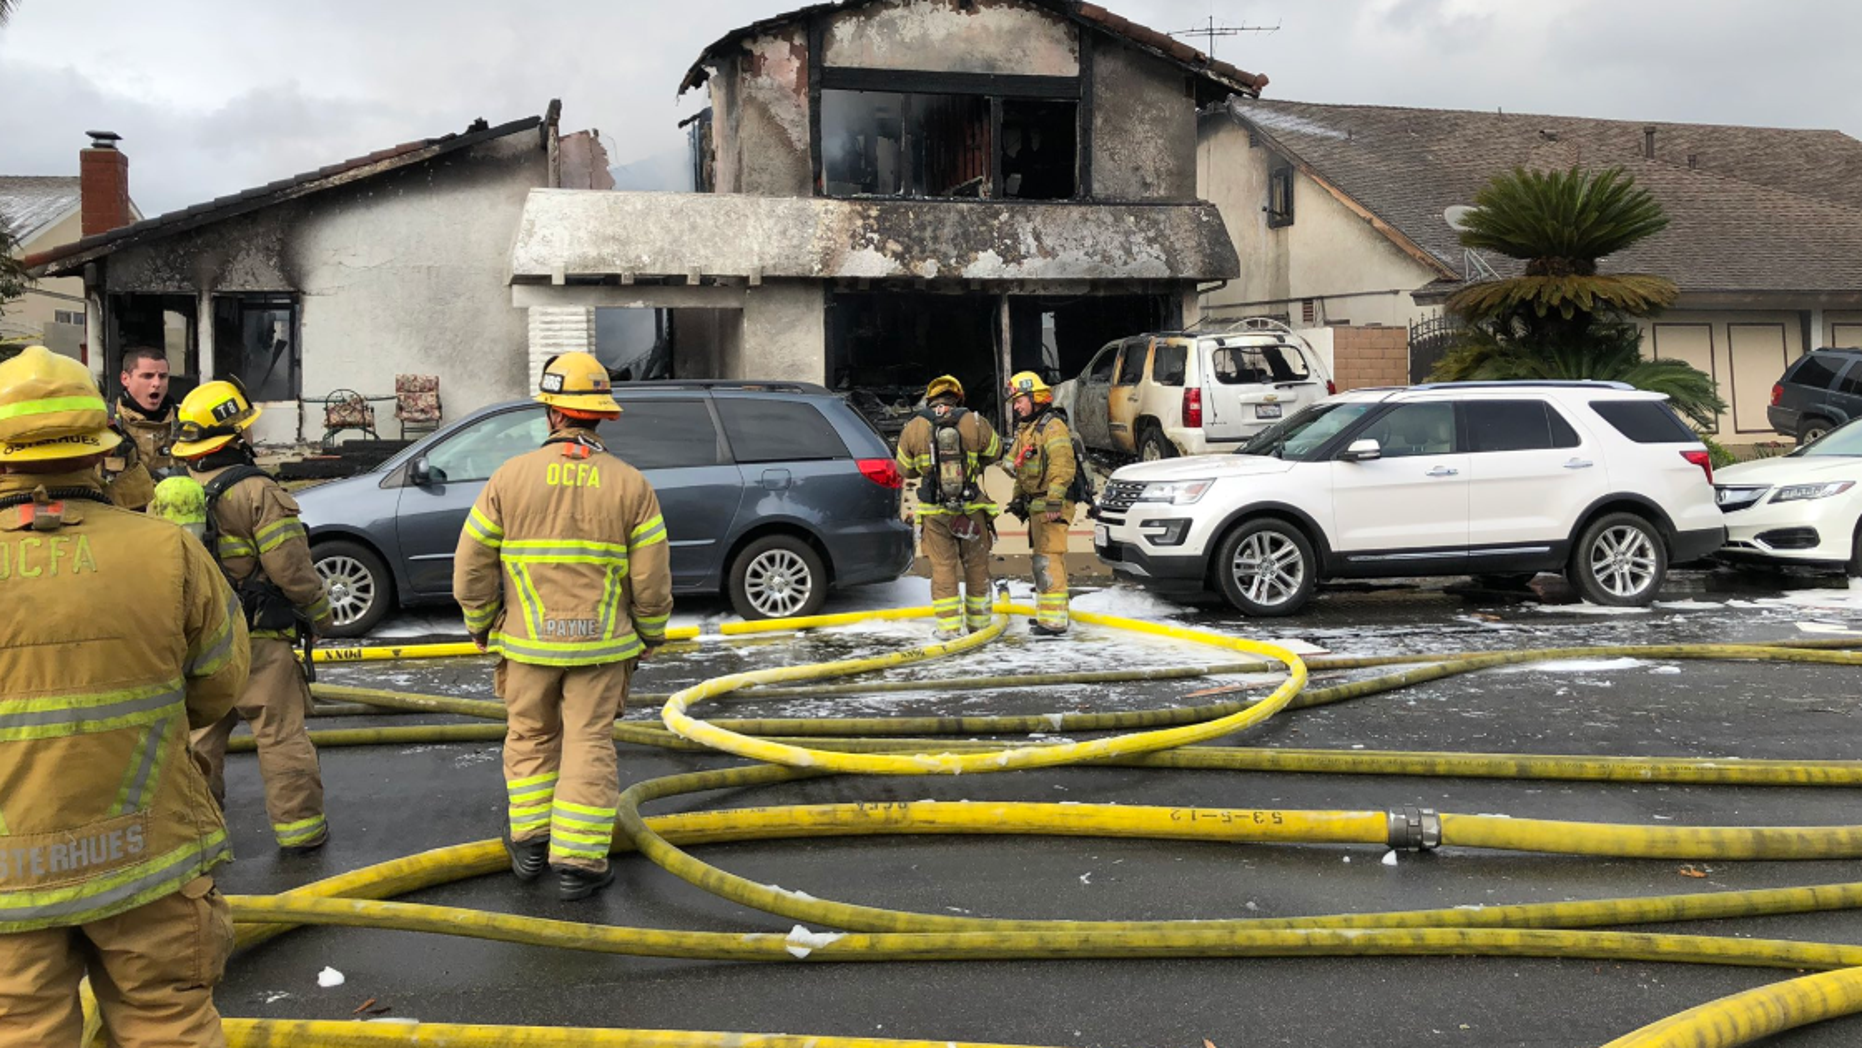 Five dead as plane crashes into house in California